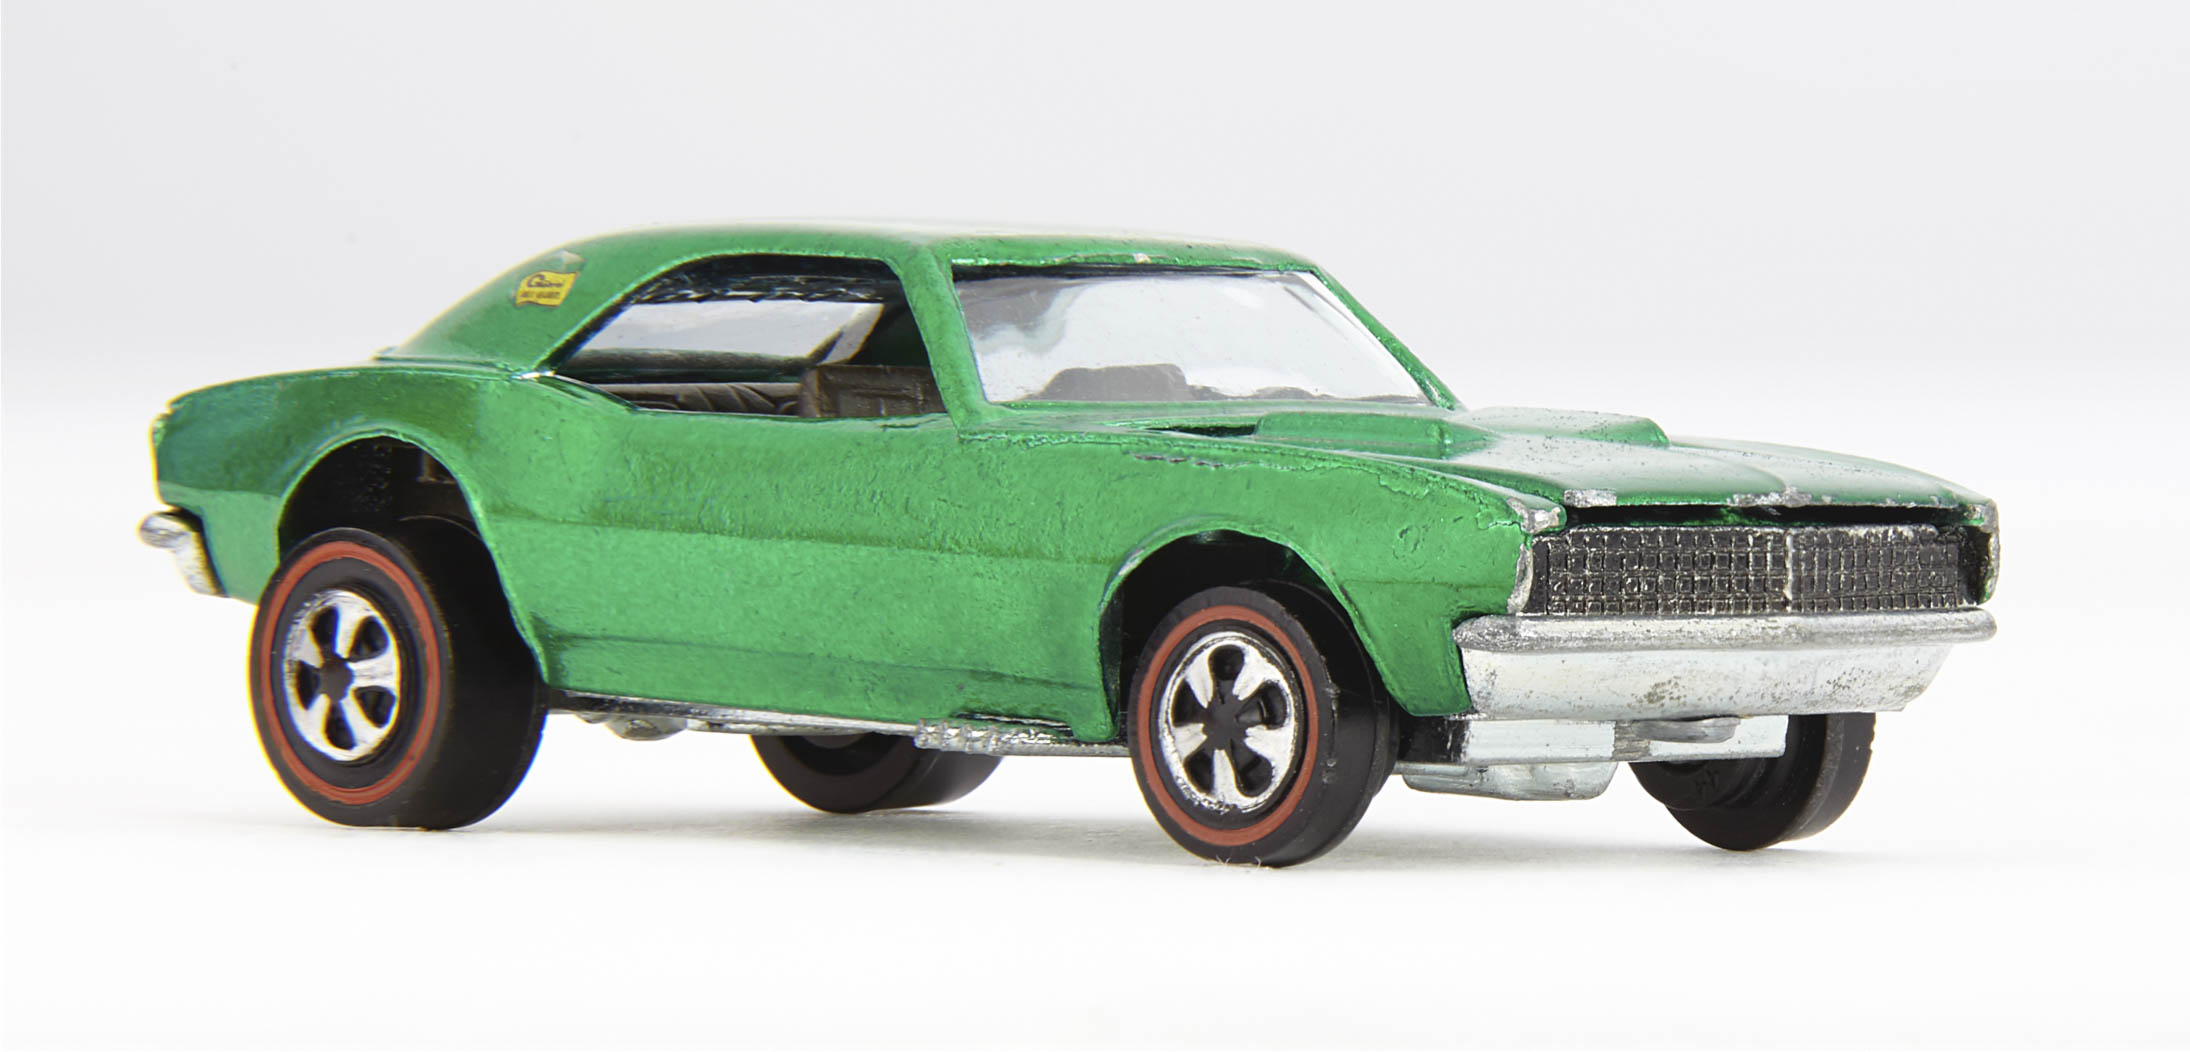 The first Hot Wheels Custom 1967 Camaro